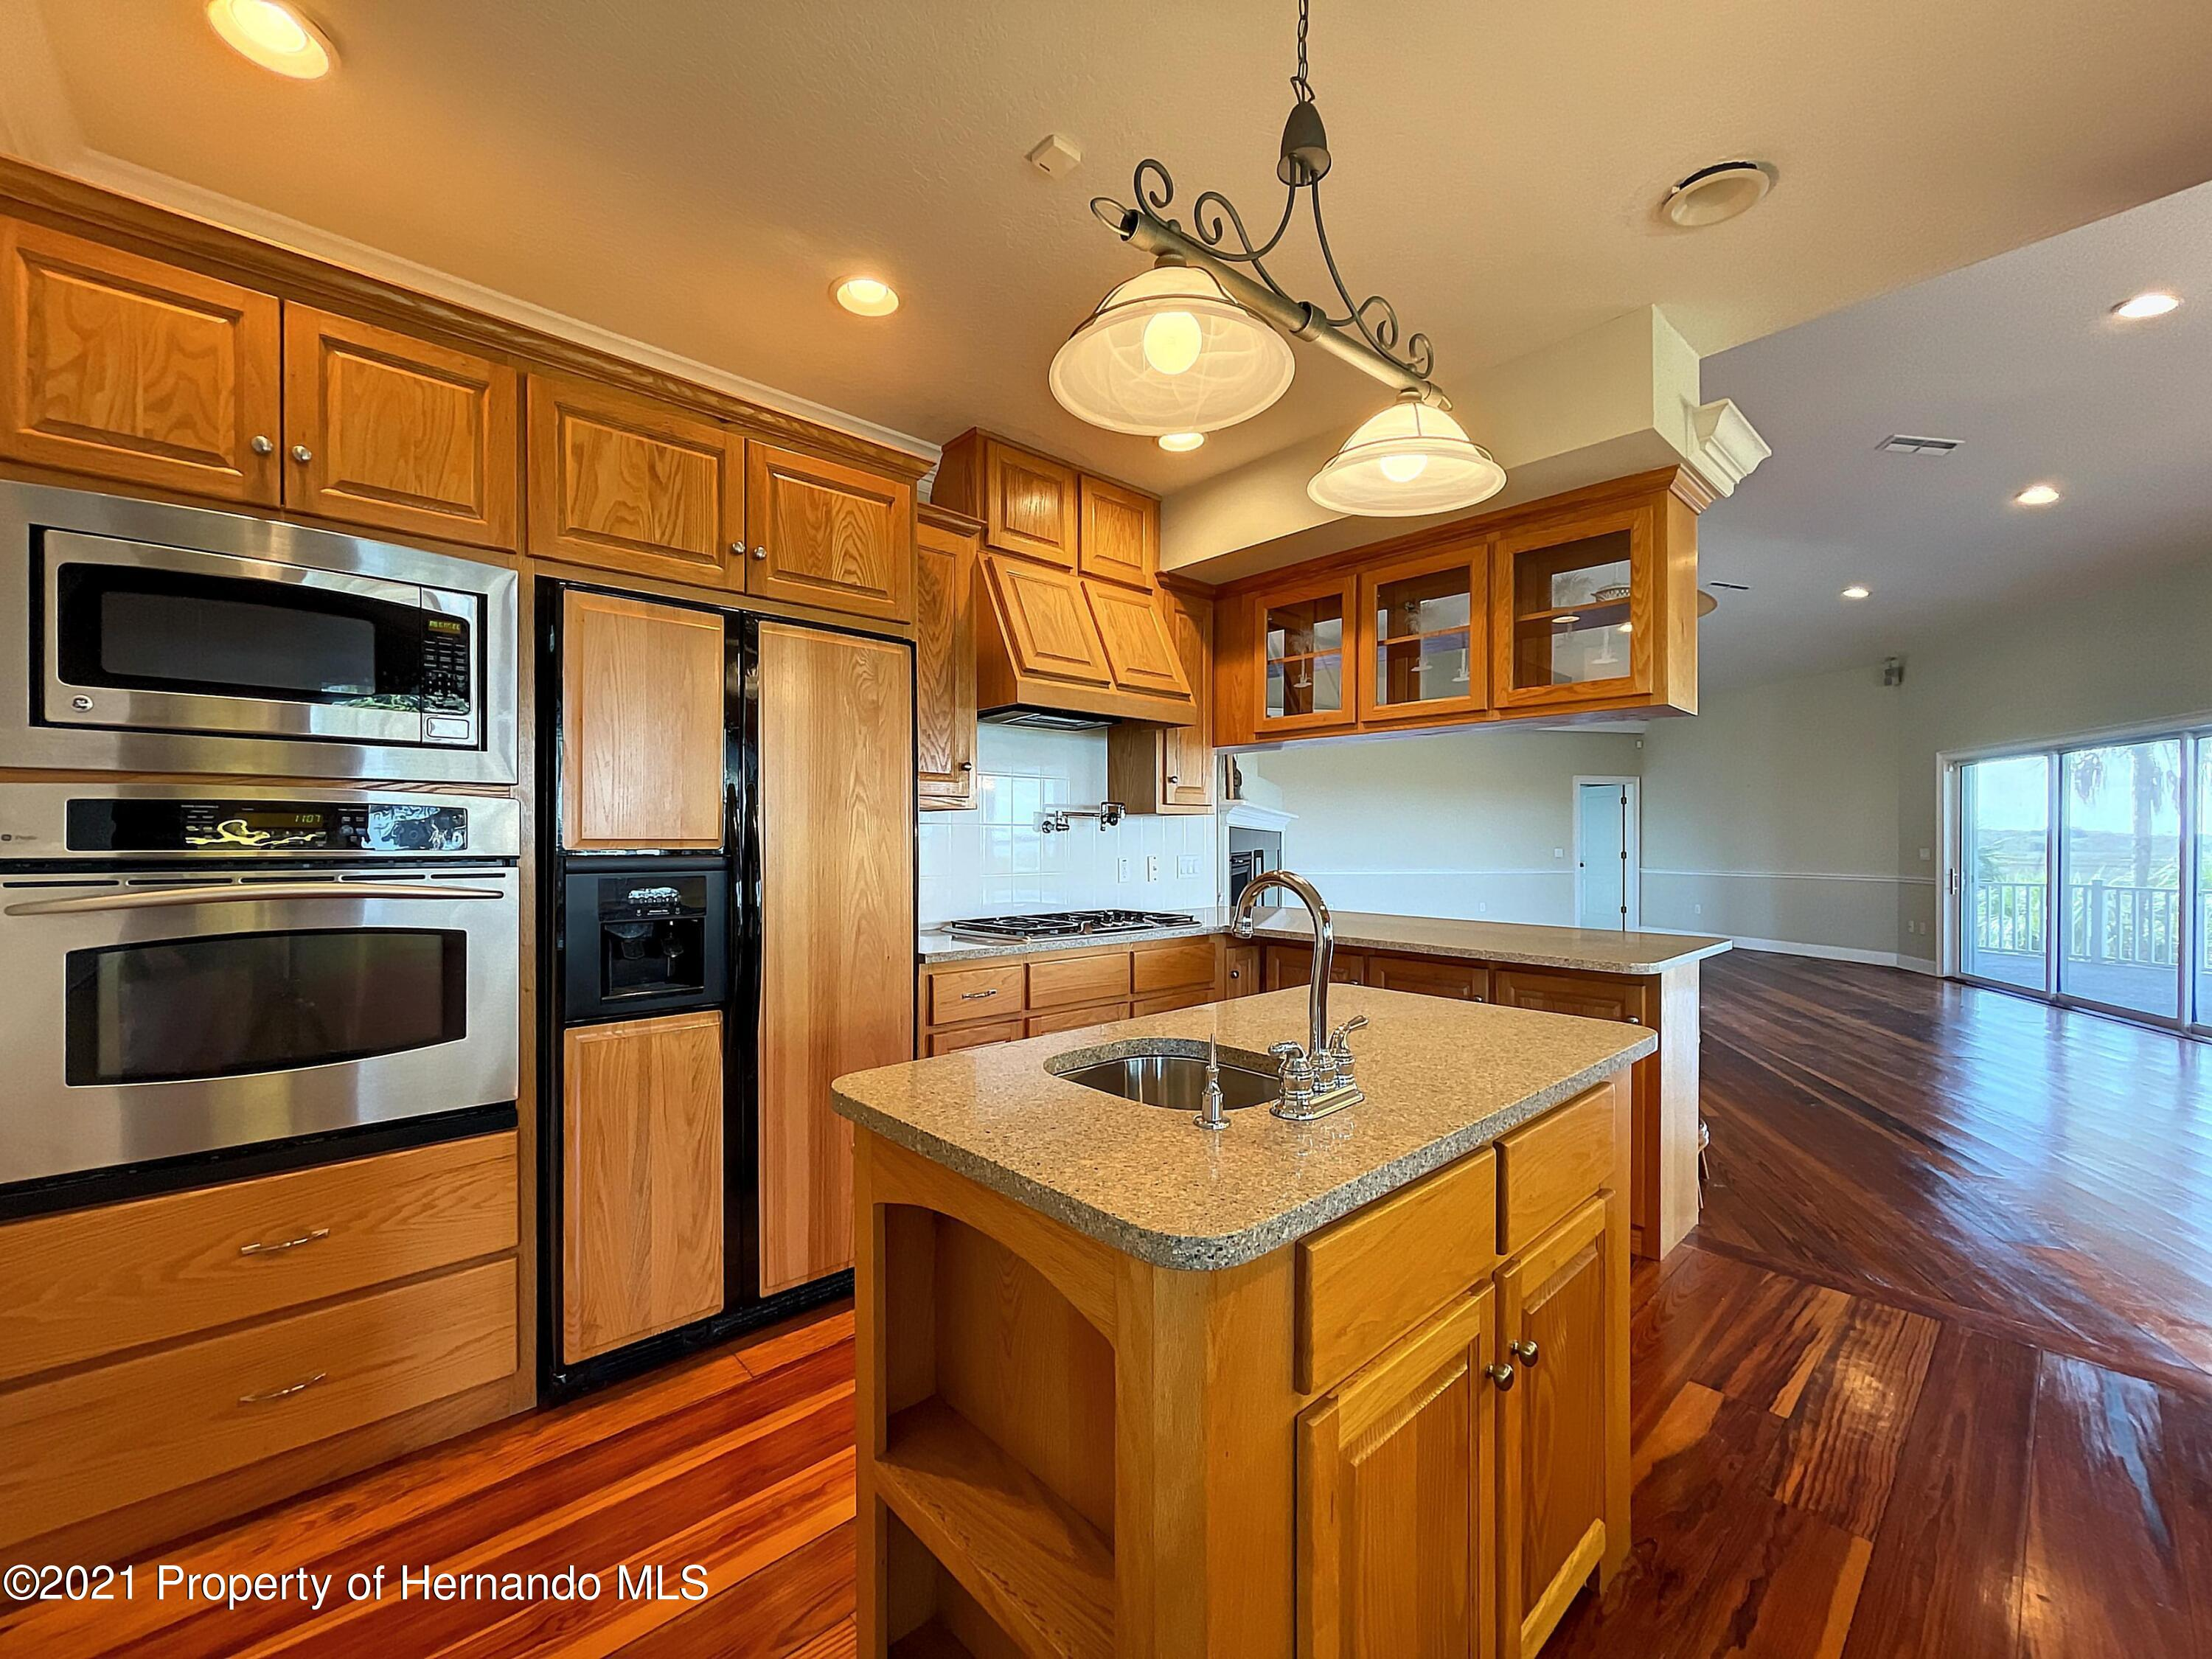 Image 21 of 101 For 1091 Osowaw Boulevard